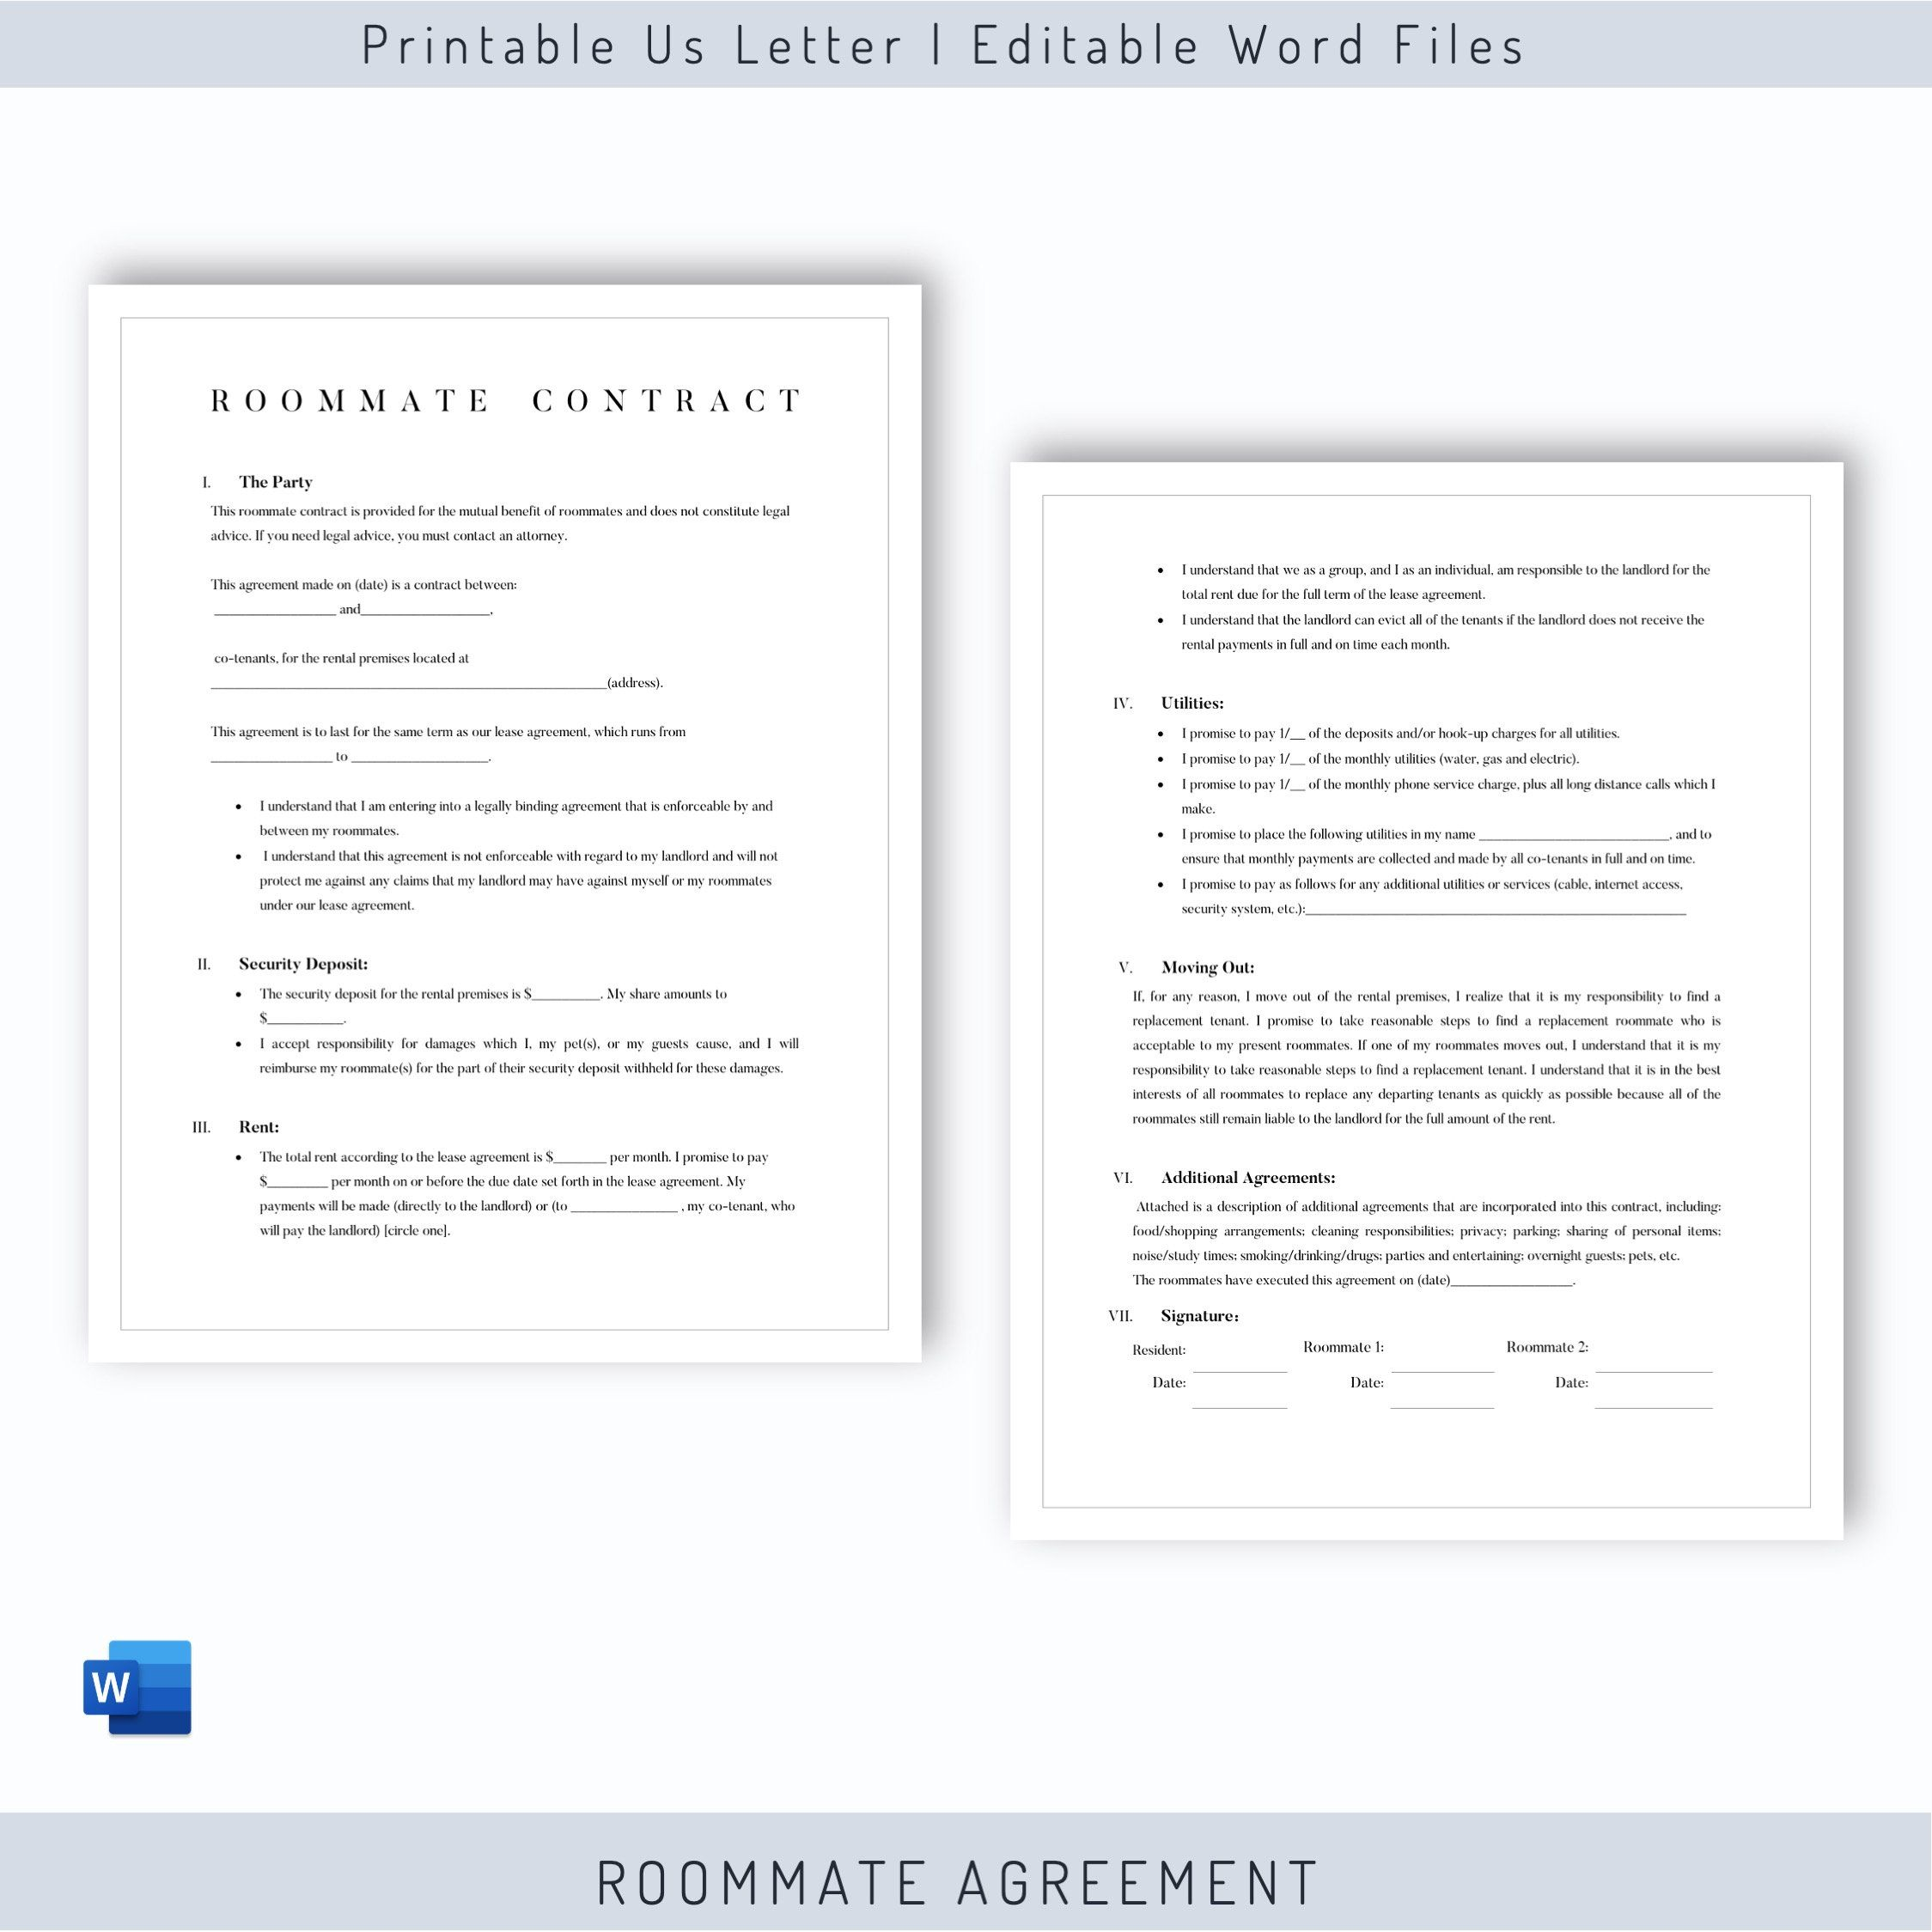 Transfer Of Ownership Agreement Template Fresh Change Ownership Letter To Tenants Template E Room Rental Agreement Rental Agreement Templates Rental Agreements